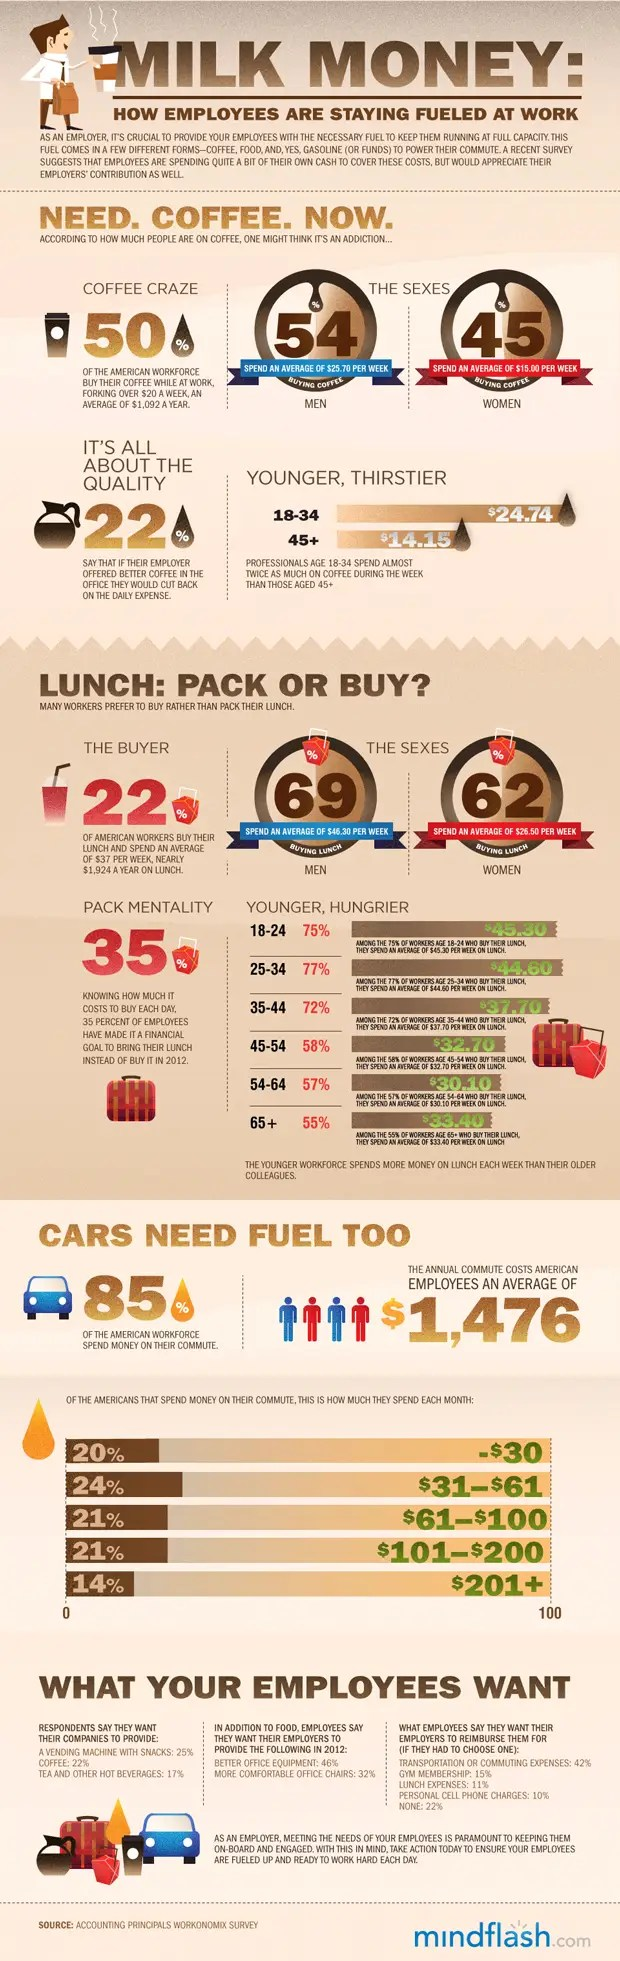 infographic, lunch, office, milk money